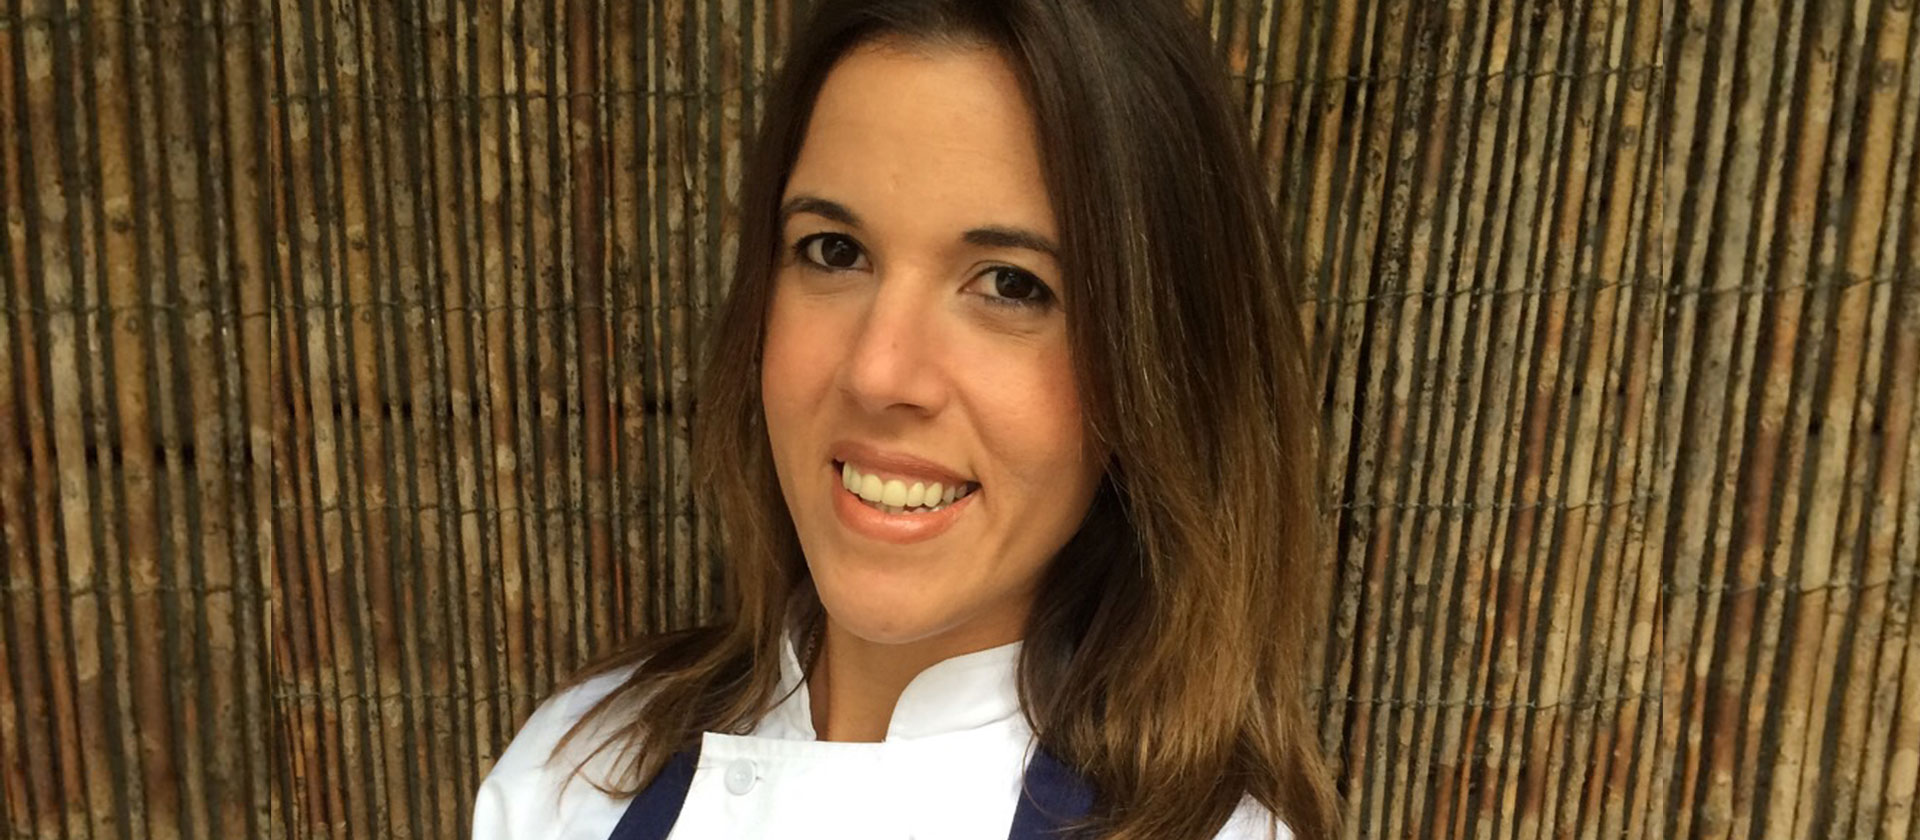 Alumni Luciana BerrySuccess Story - Le Cordon Bleu London